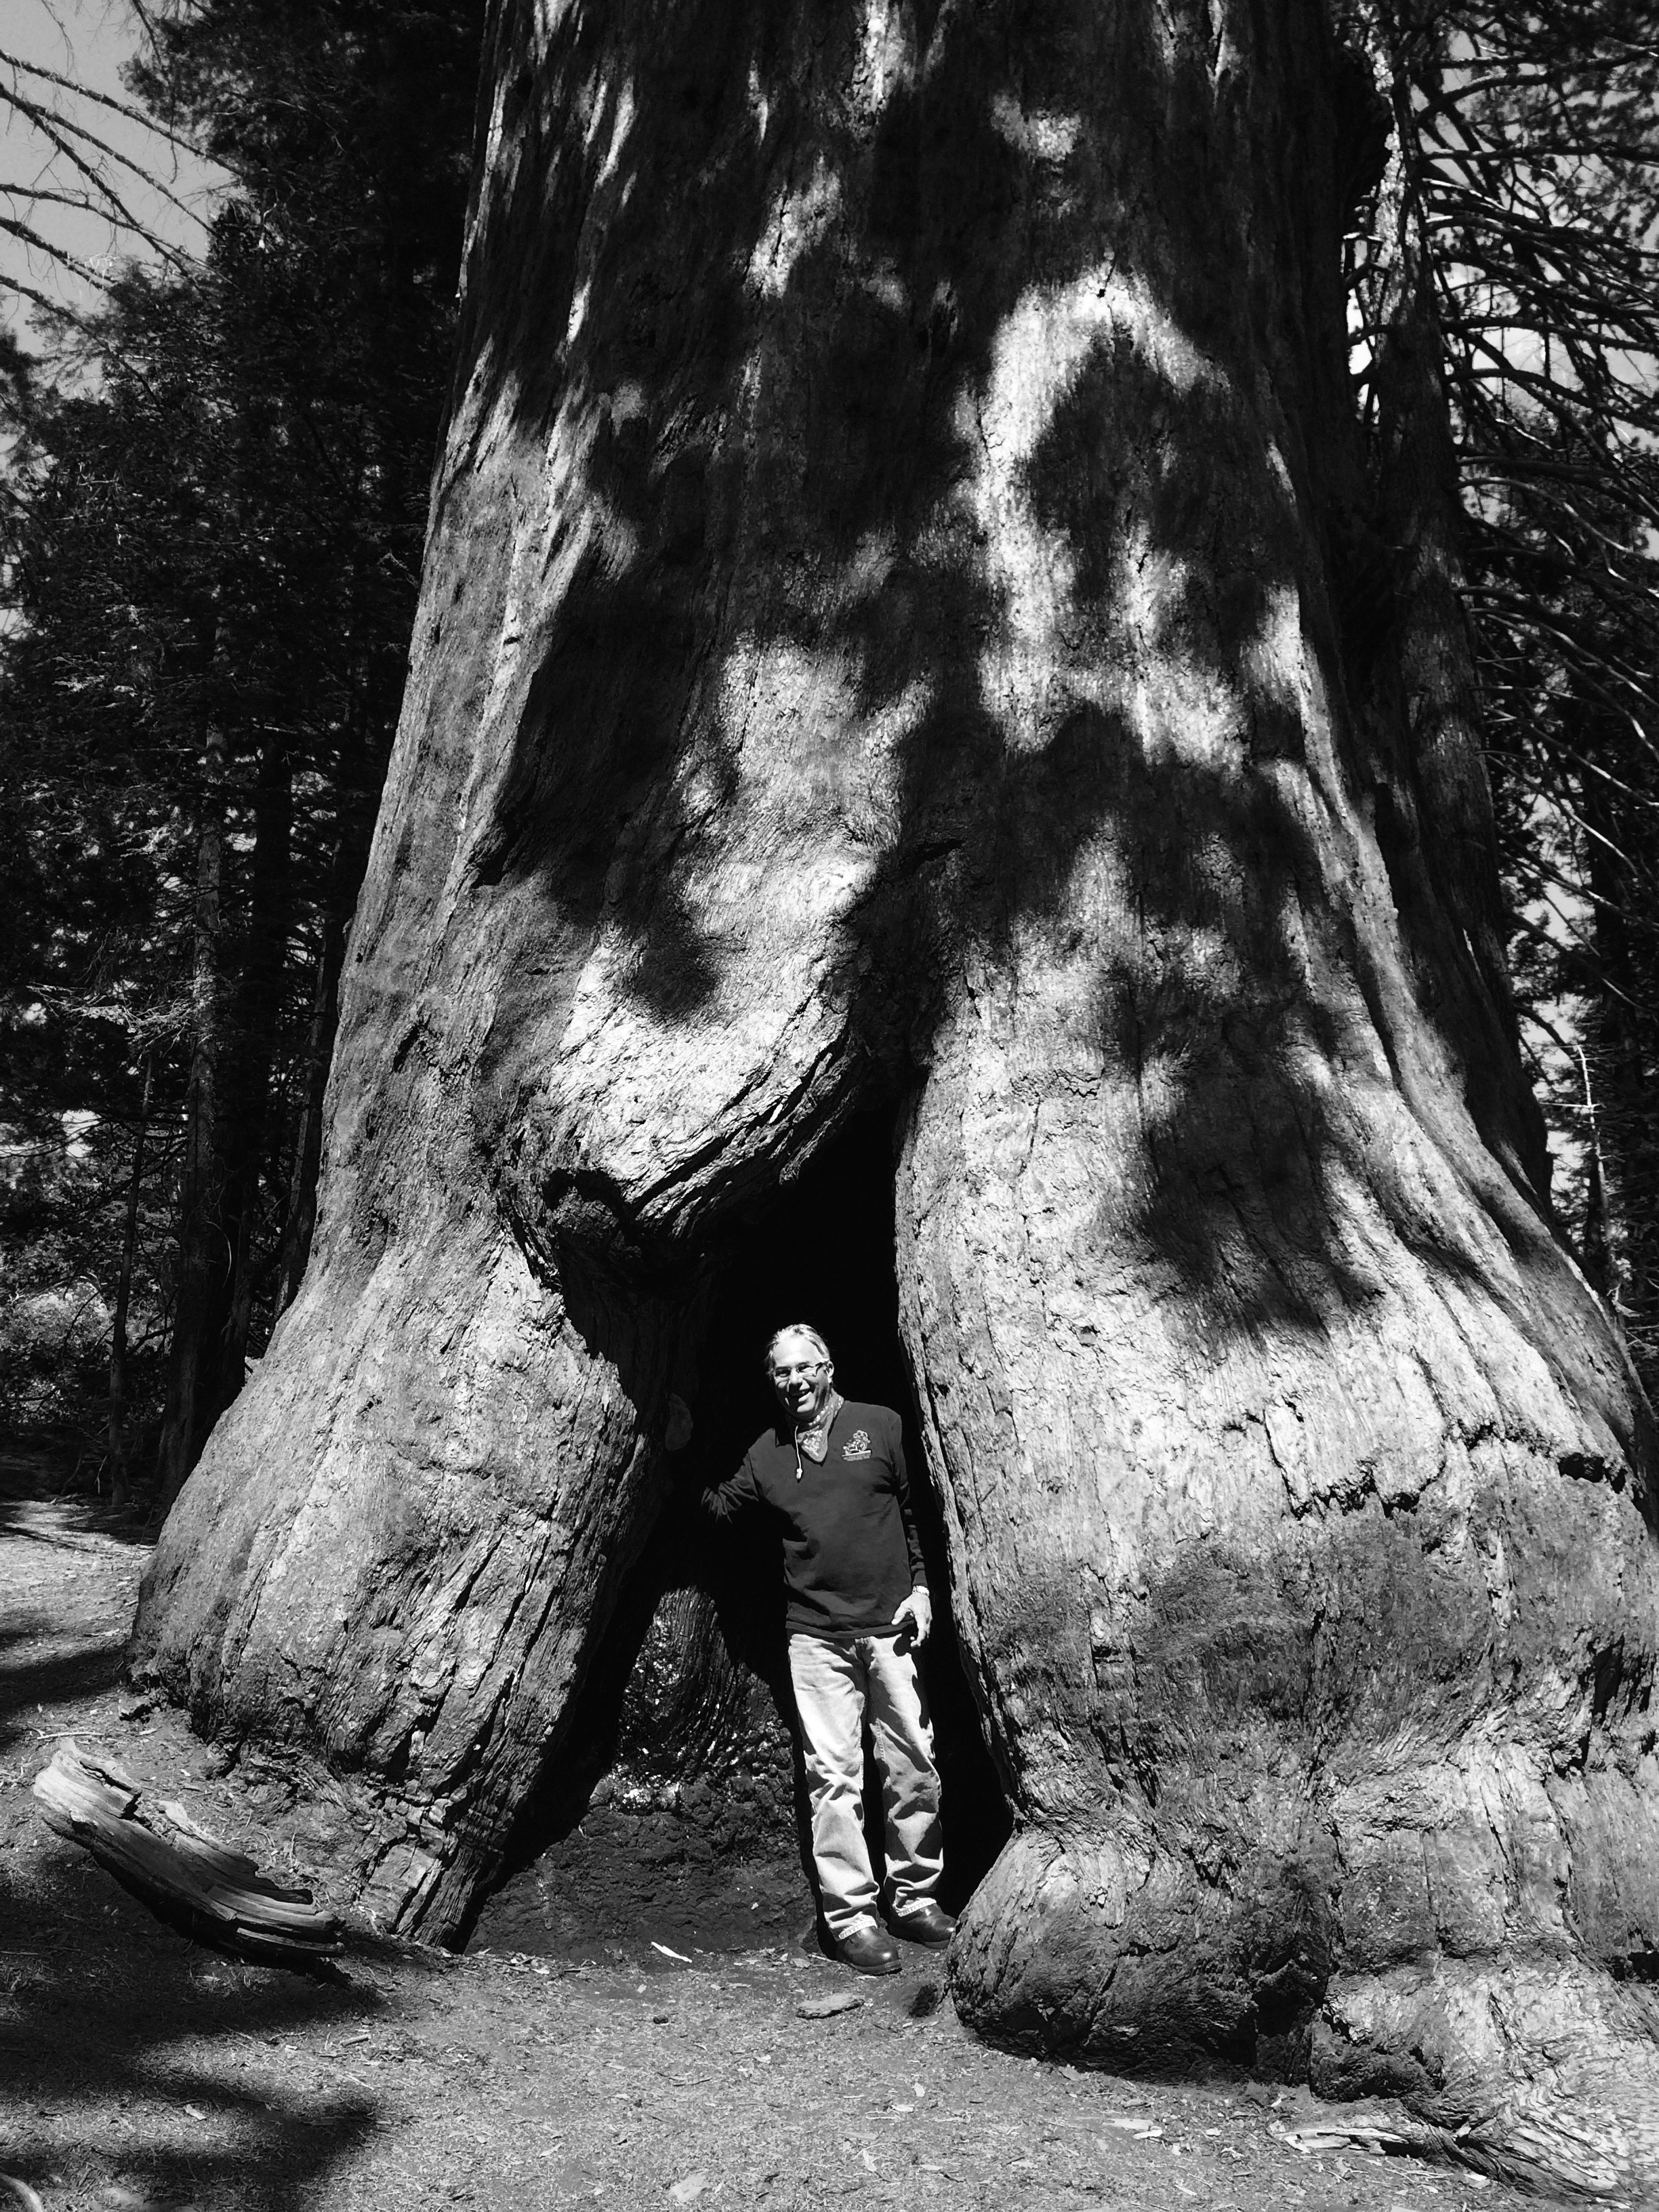 Here I am checking out one of the sequoias.